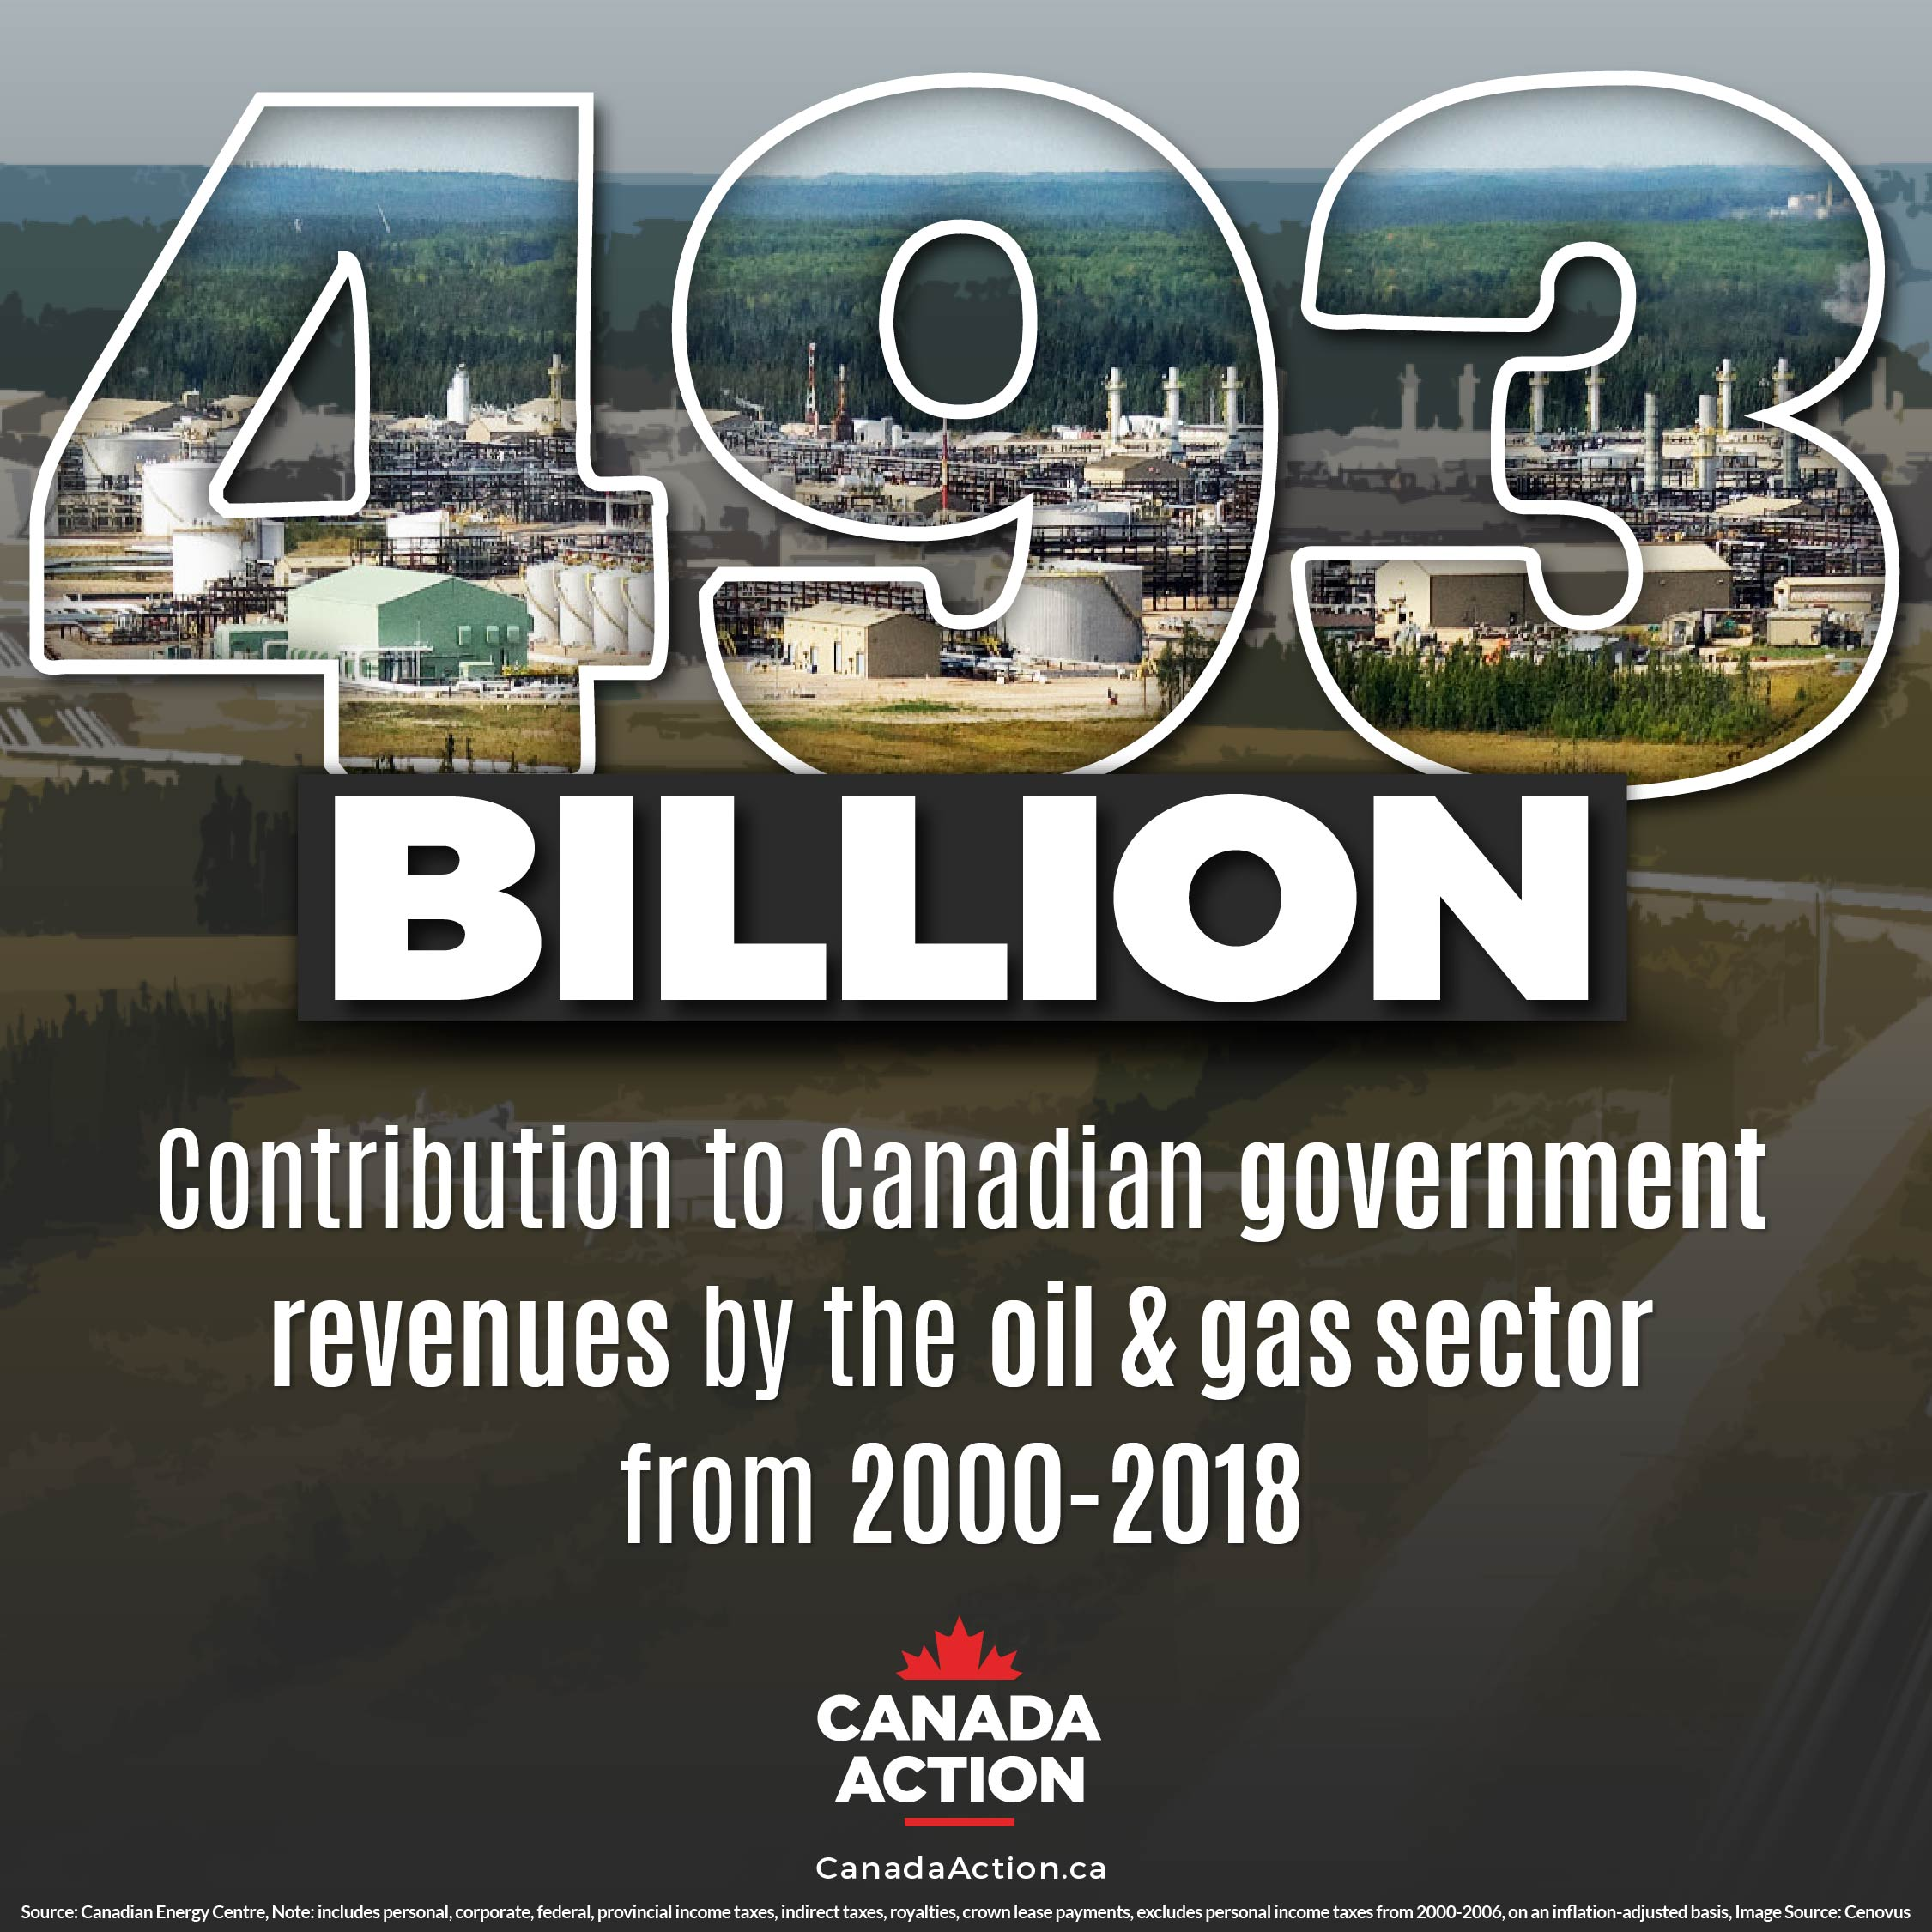 Canada Oil and Gas Sector Generated 493 Billion Government Revenues 2000-2018-02